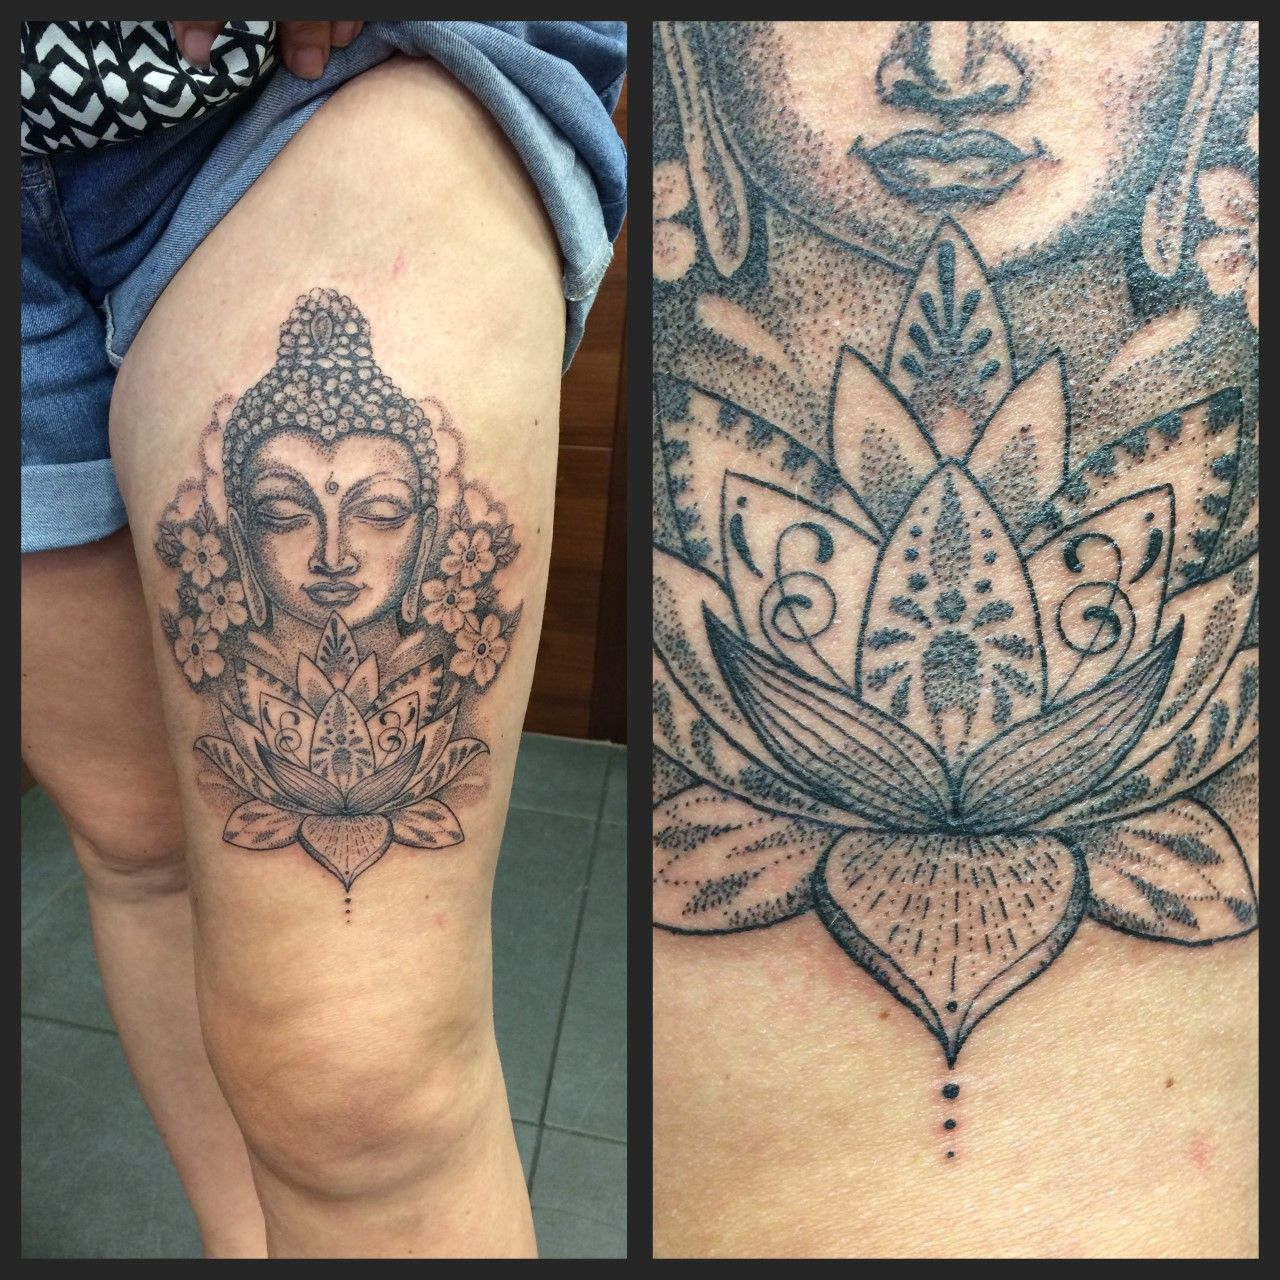 Pattern Work Buddha And Lotus Flower By Joanne Devilsown Devilsowntattoos Tattoos Leivcester Leicester Bhuddist Tattoos Buddah Tattoo Buddha Tattoo Design